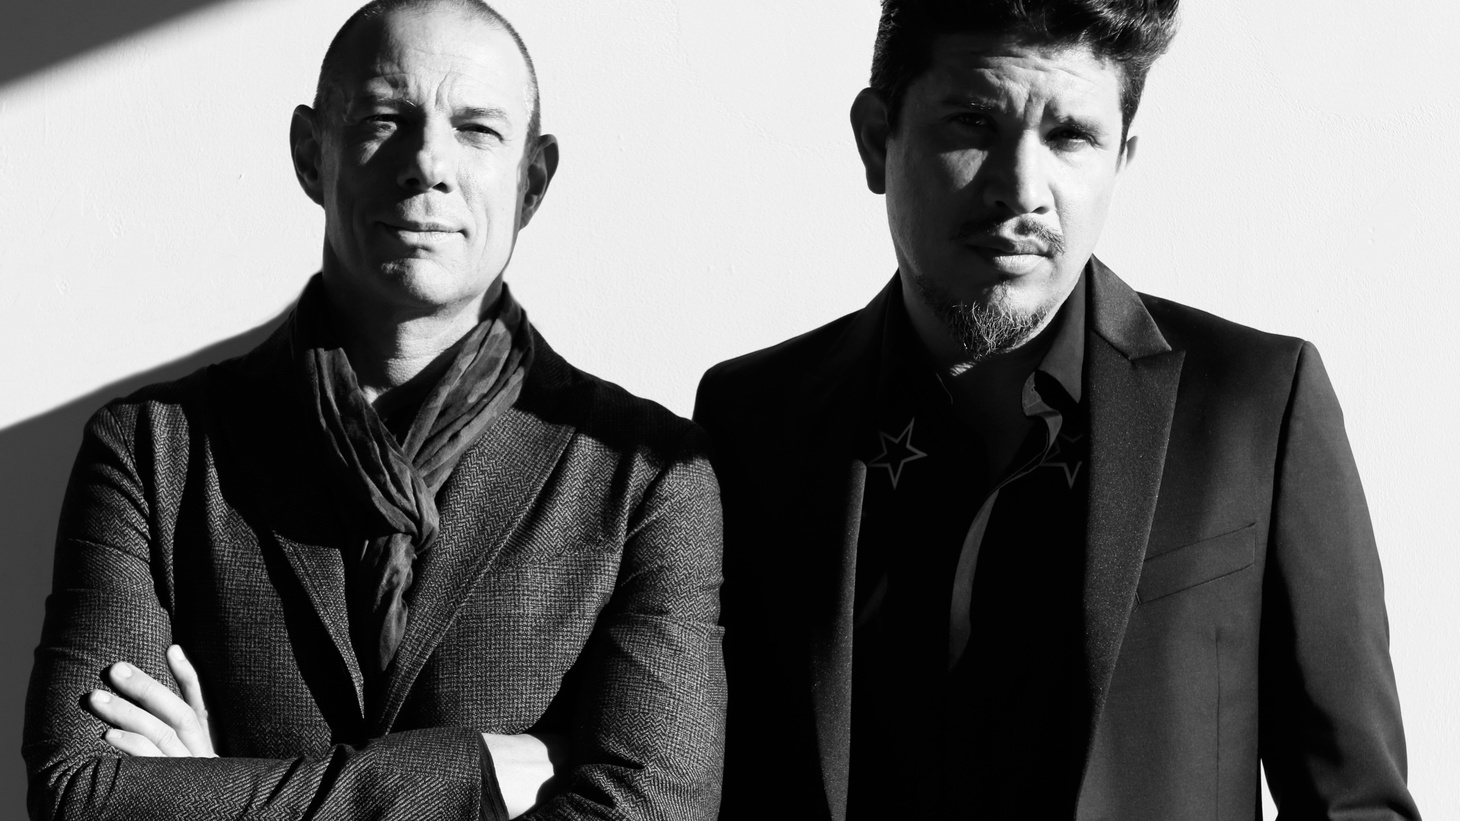 Since their debut two decades ago, Thievery Corporation has shown a deep love and respect for Jamaican music. So when it came to recording a new album, DC's dynamic electronic duo set up shop in Kingston.